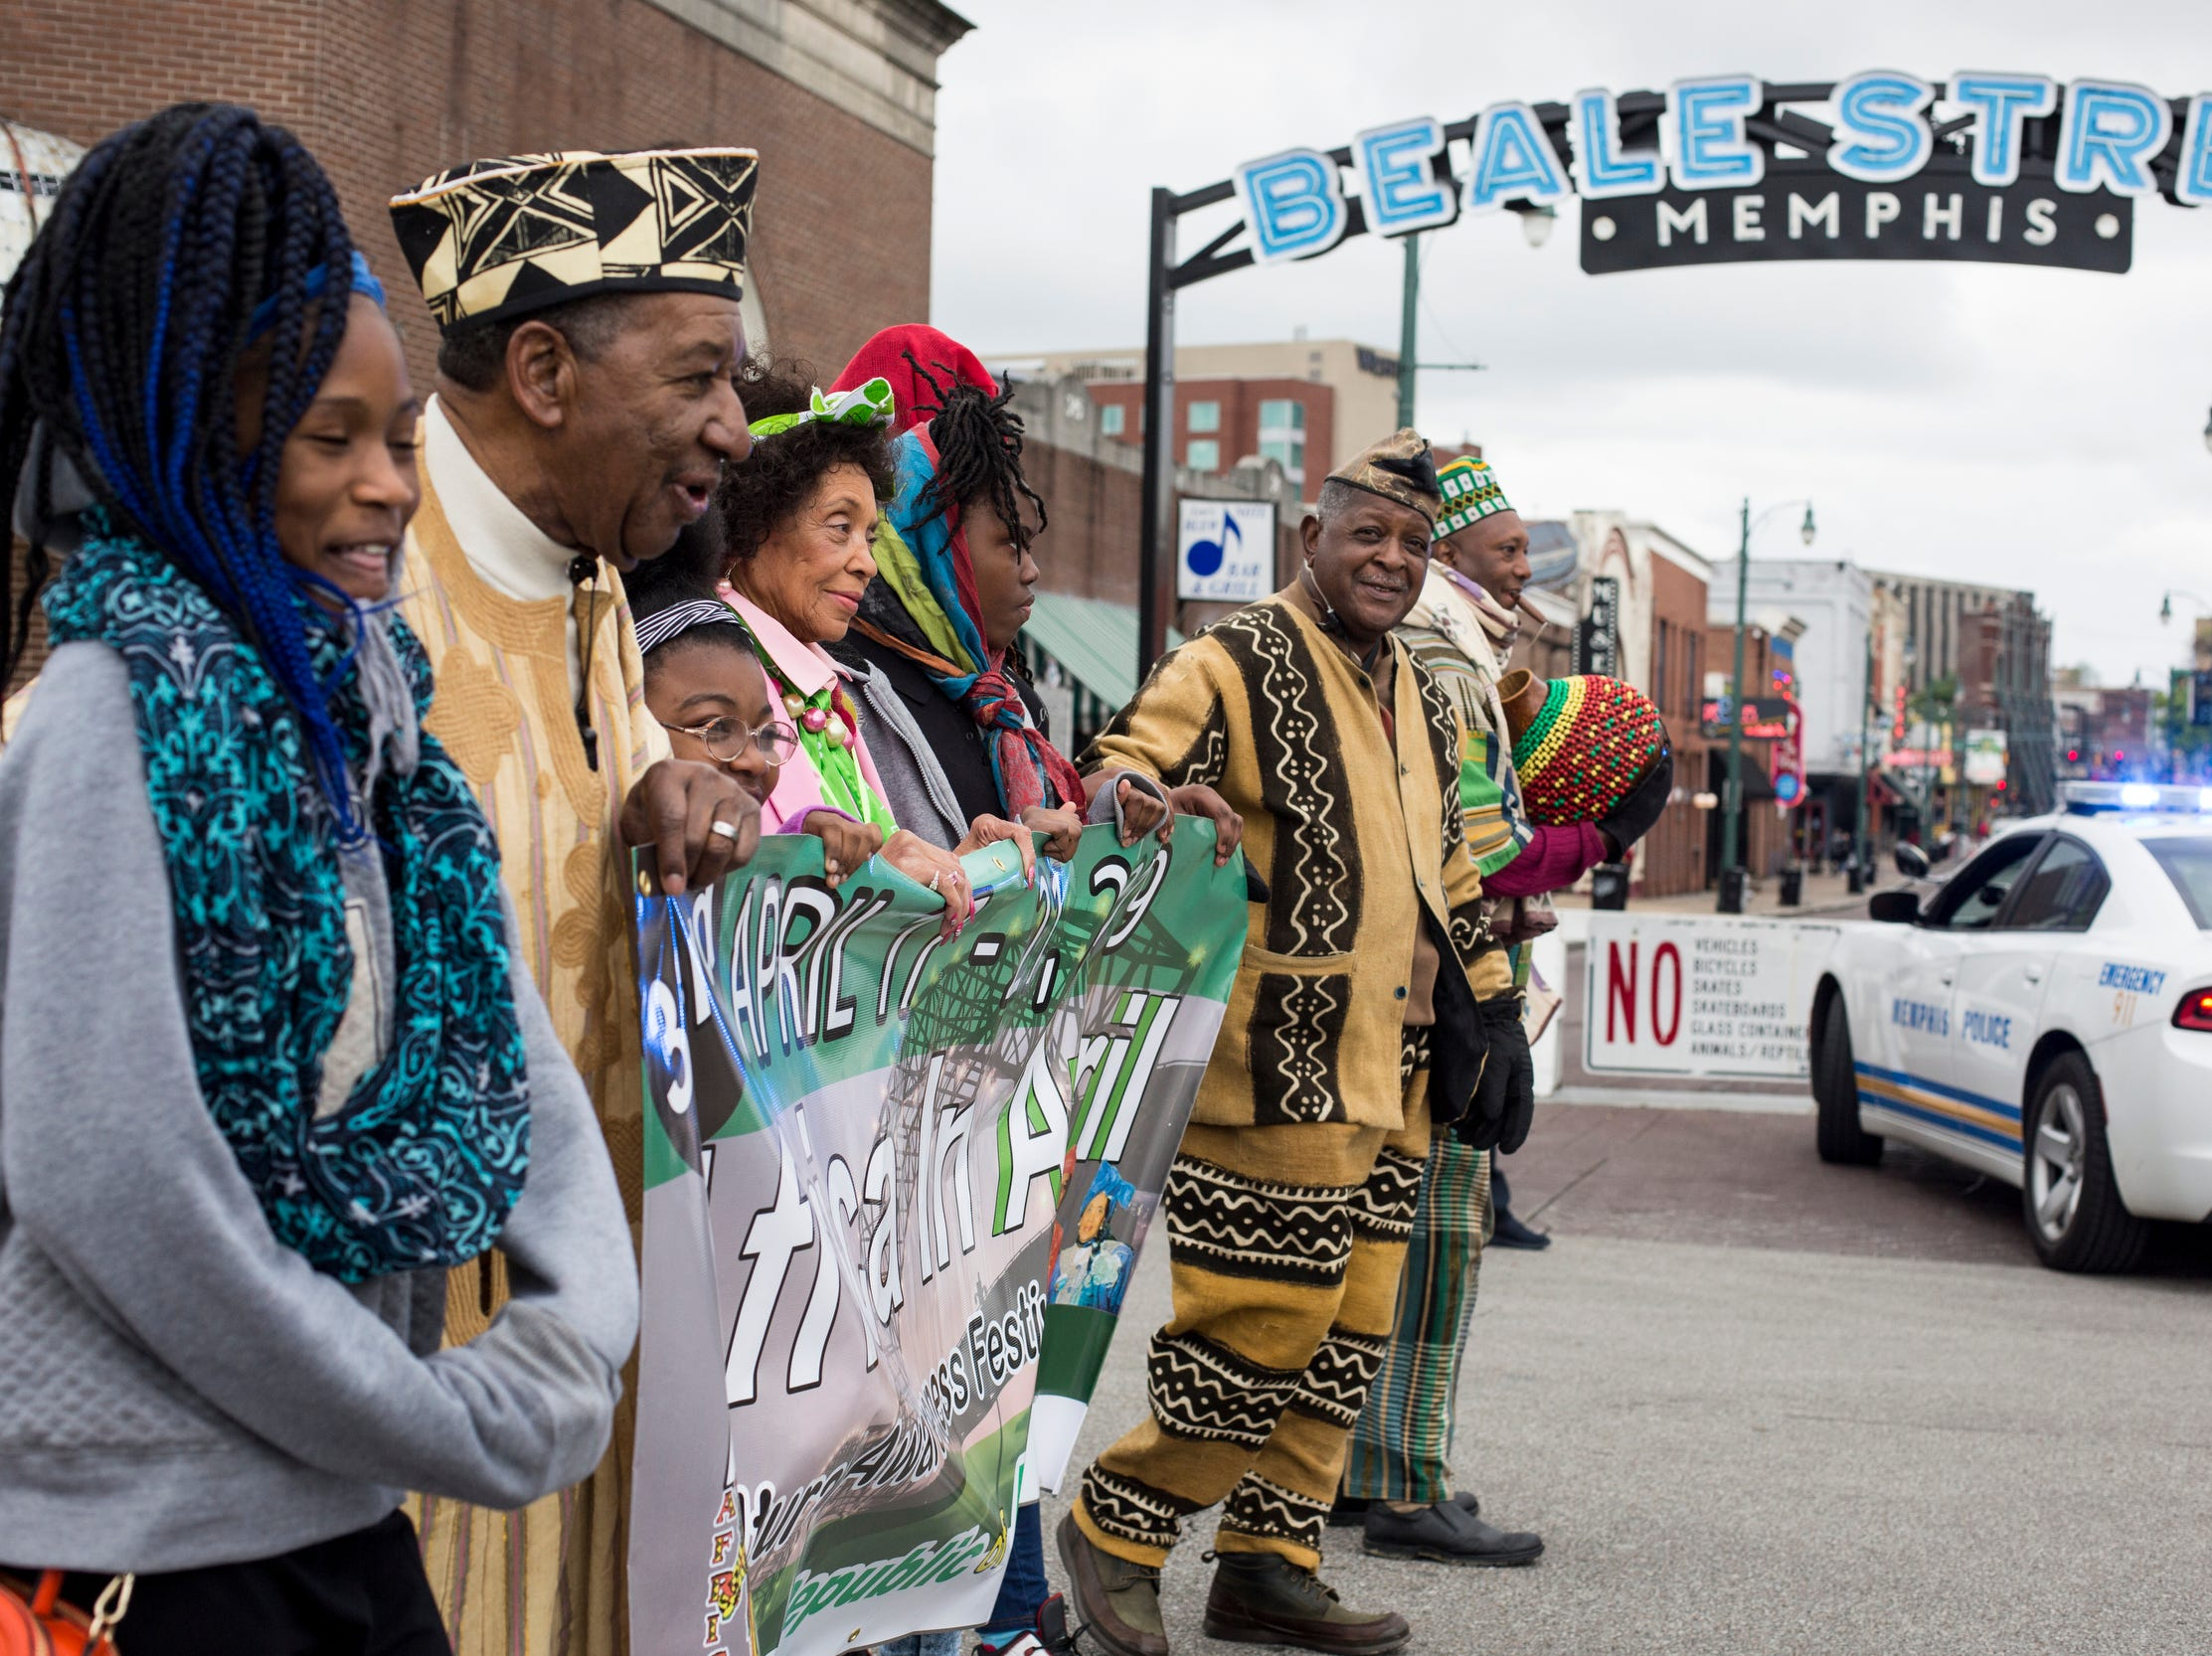 The Africa in April International Diversity Parade was held on Friday, April 19, 2019, in downtown Memphis. The 33rd annual Africa in April Cultural Awareness Festival runs through April 21 at Robert Church Park.